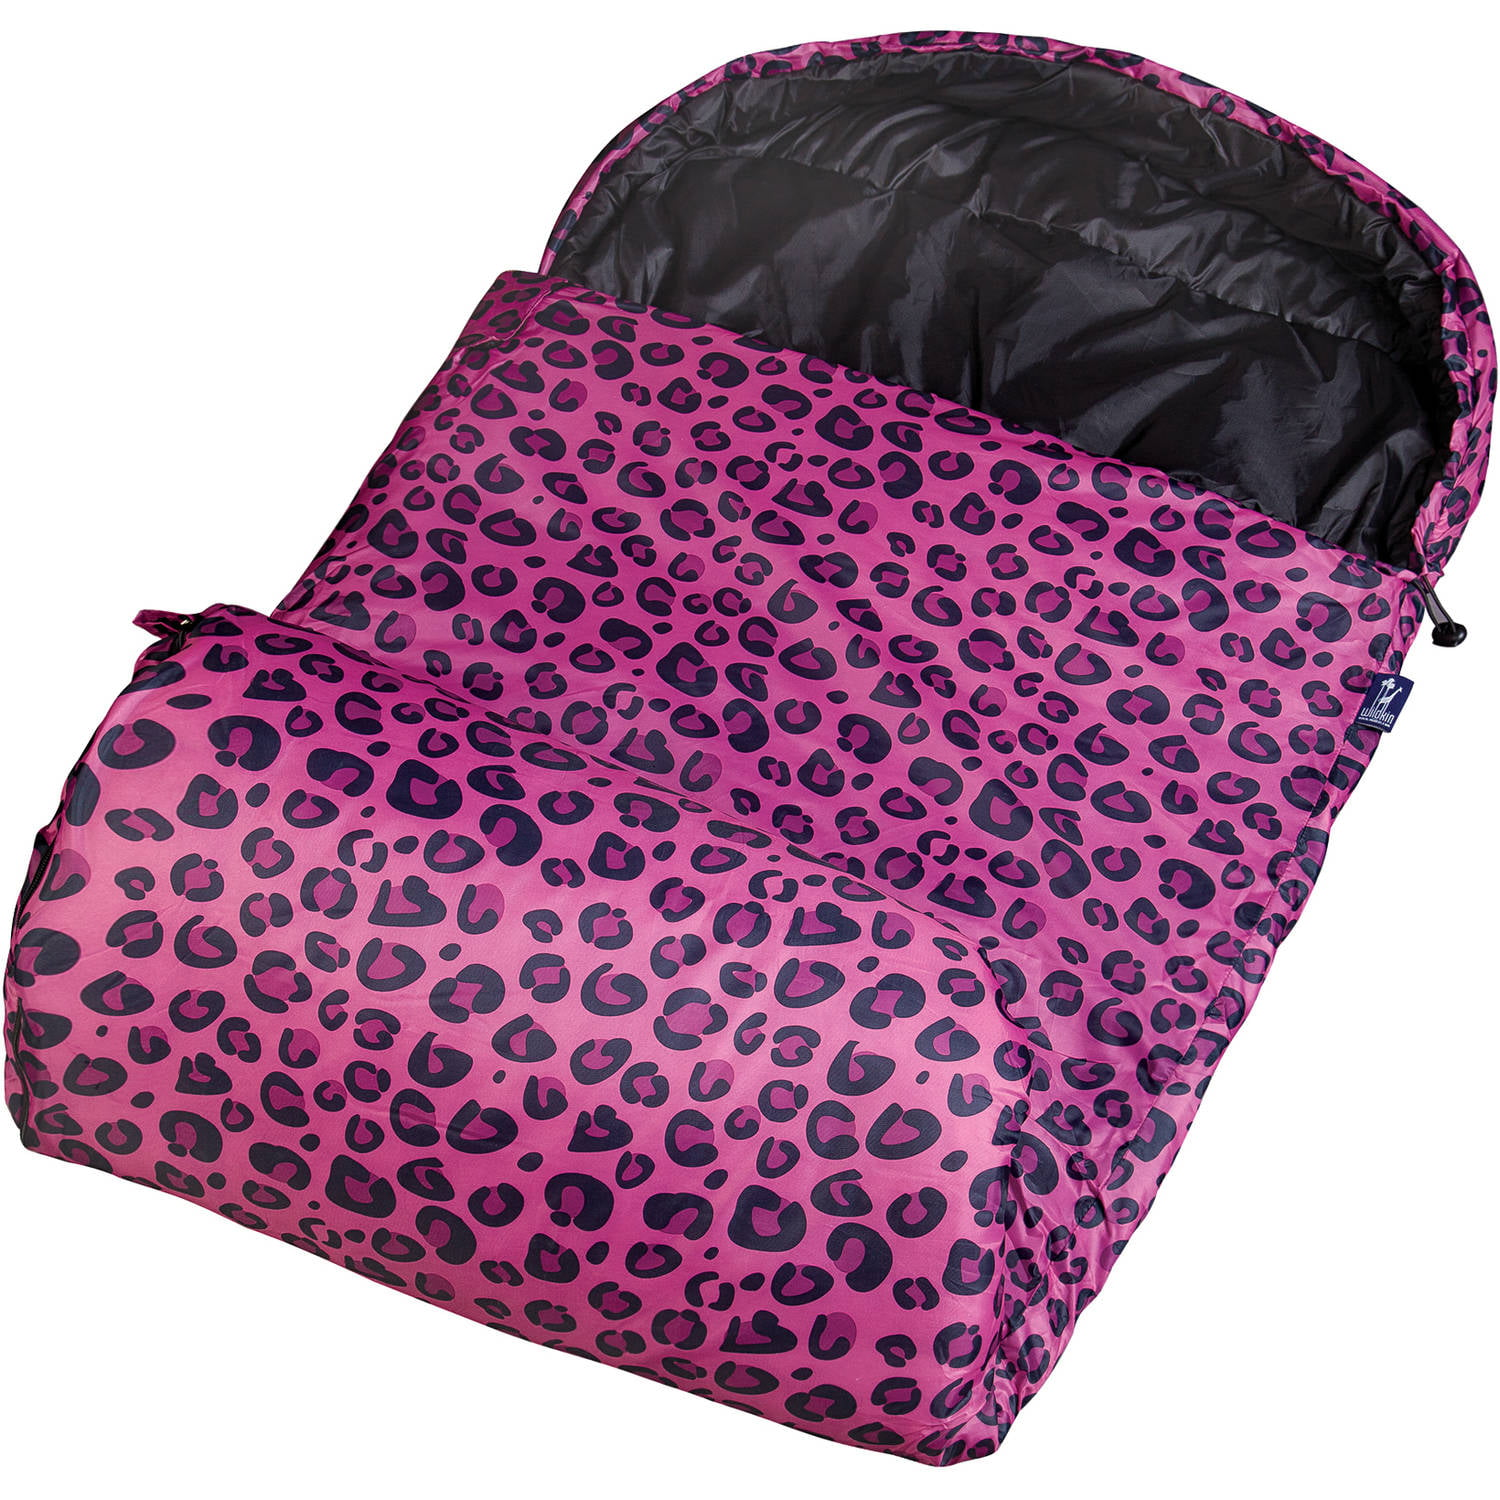 Wildkin Stay Warm 30 Degree Kids Sleeping Bag Pink Leopard